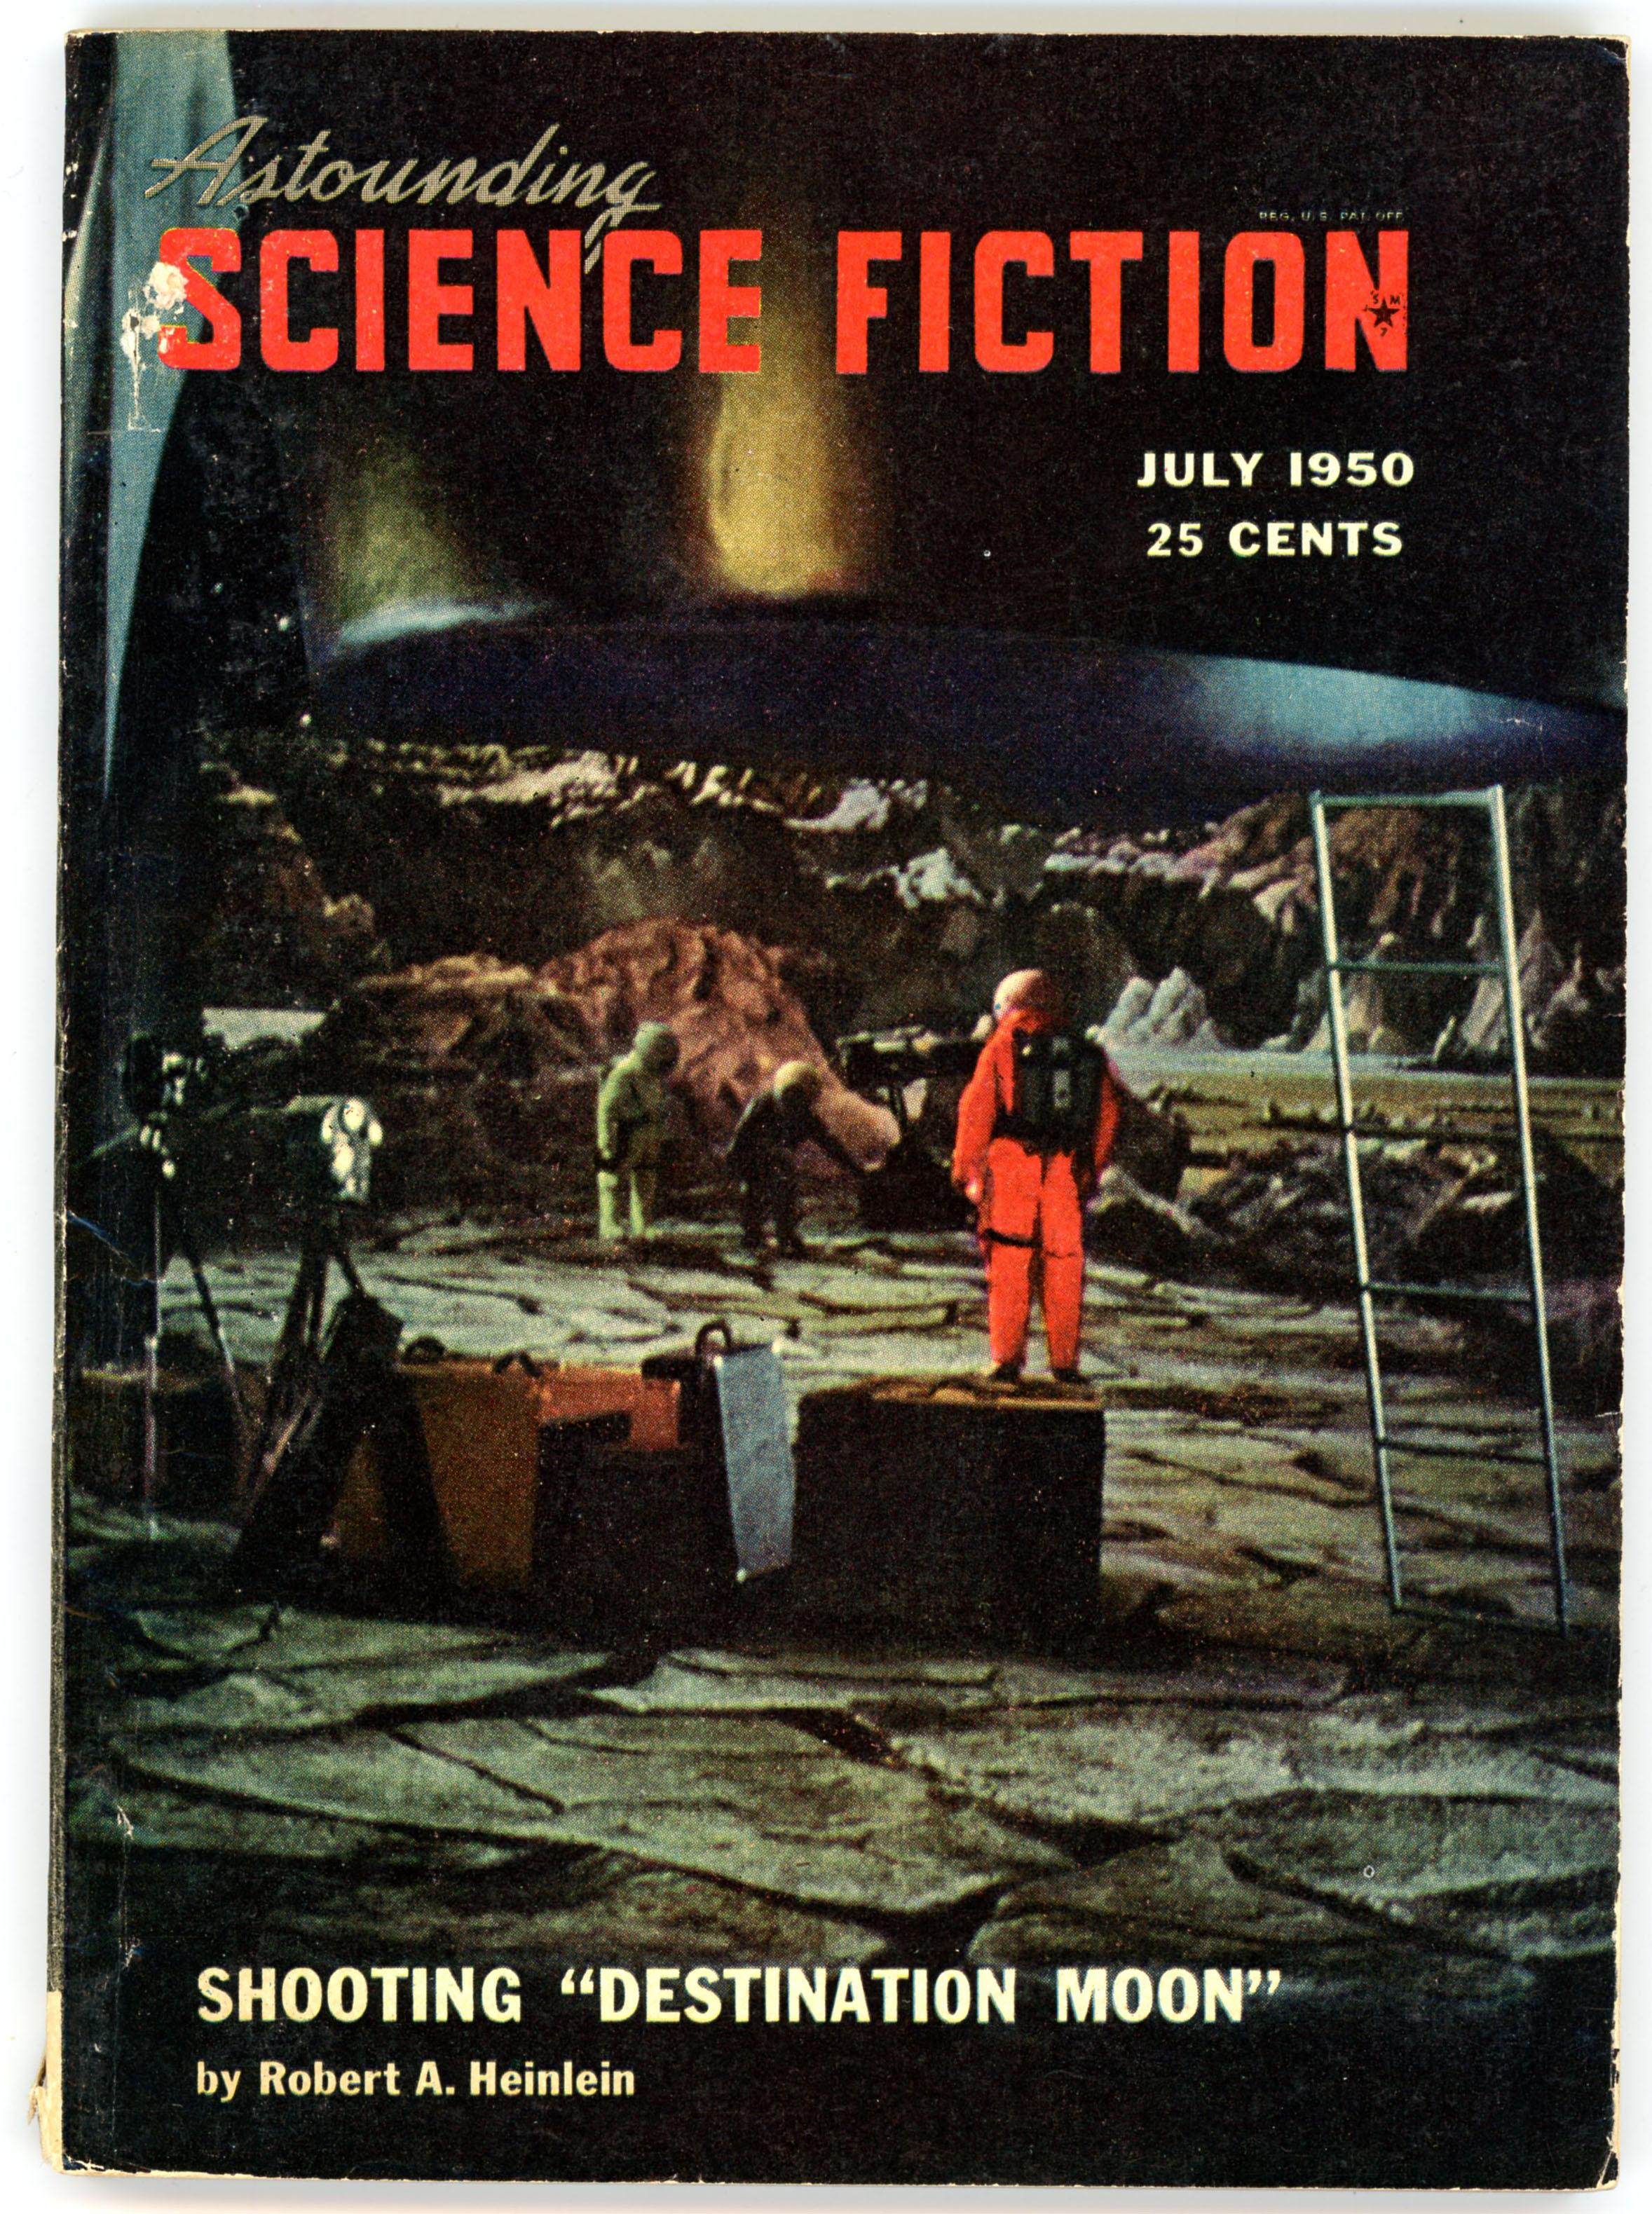 Astounding Science Fiction  July  Featuring An Essay On The  Astounding Science Fiction  July  Featuring An Essay On The Filming  Of Destination Moon By Robert A Heinlein